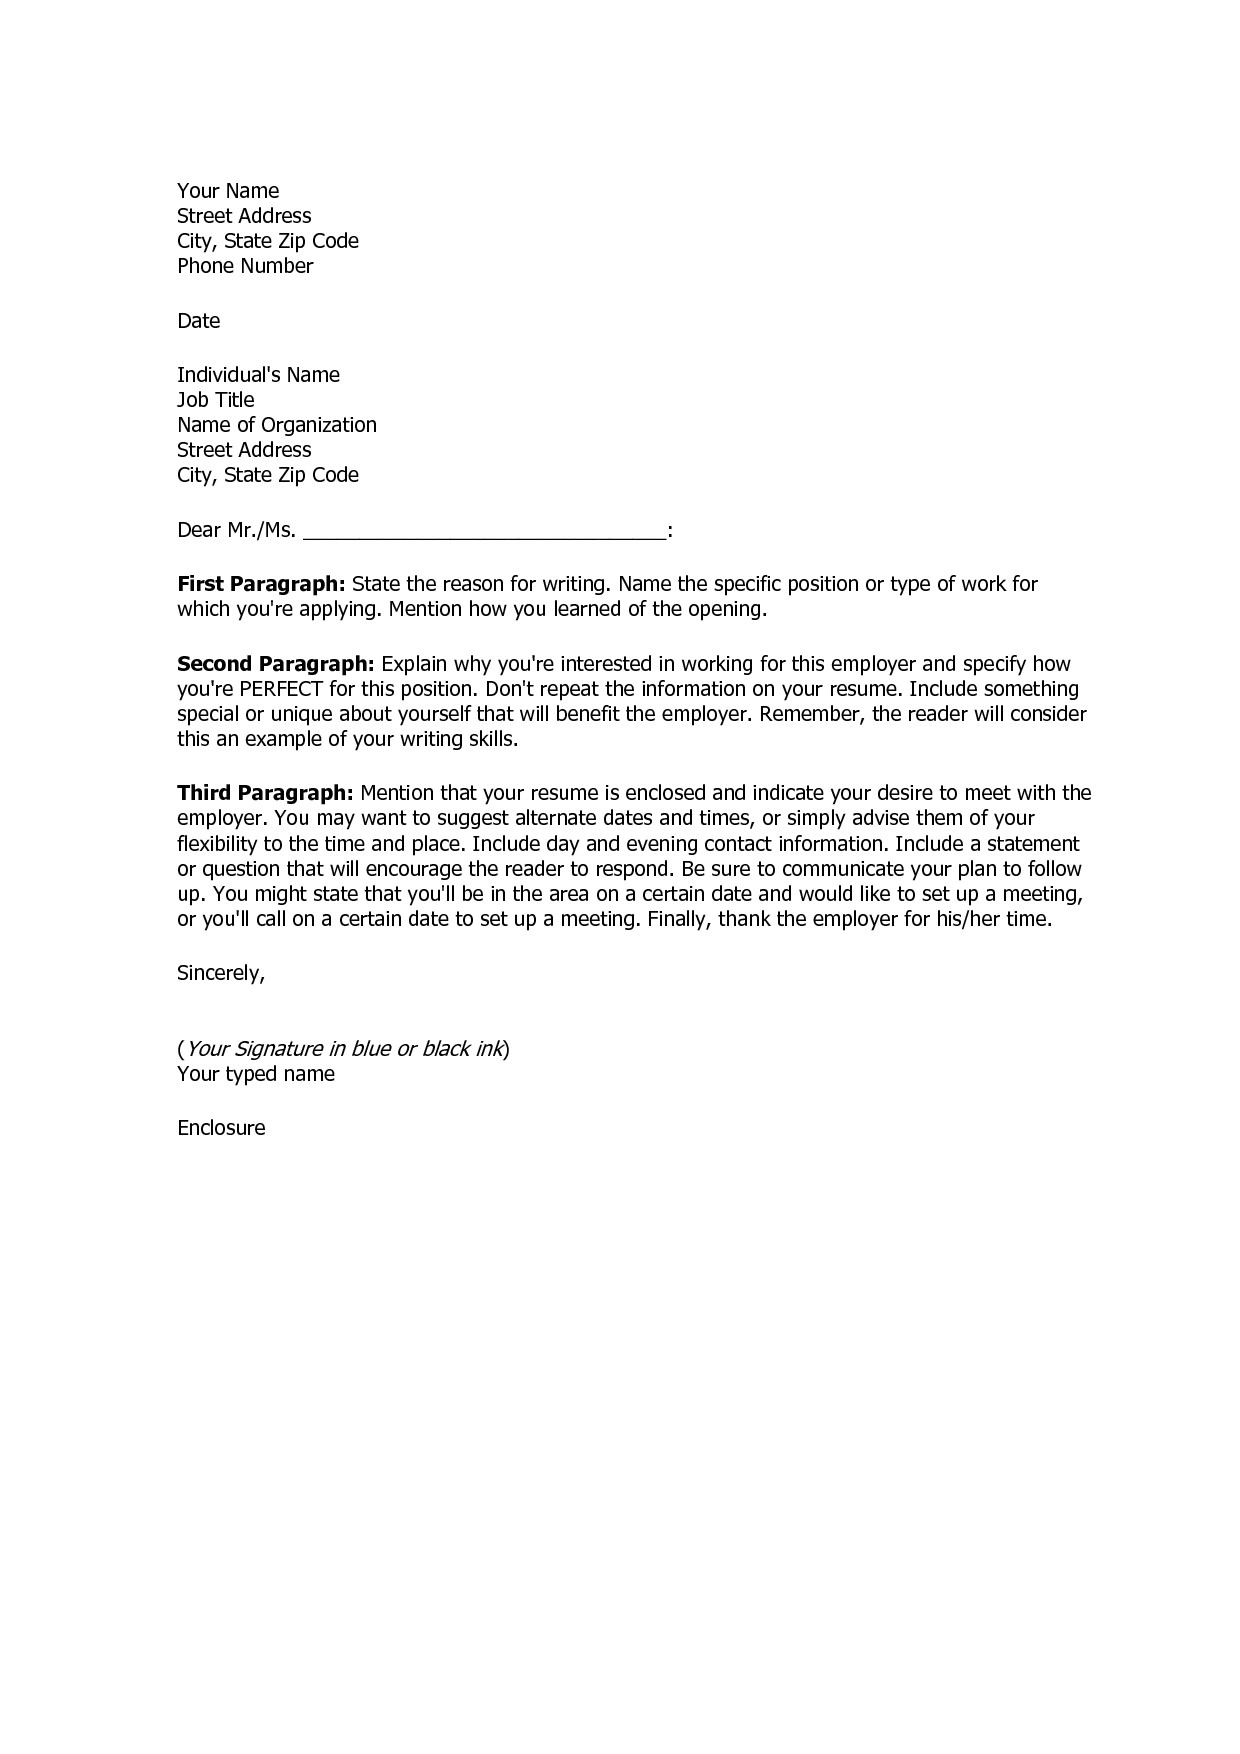 How to Prepare Cover Letter for Job Application Basic Cover Letter for A Resume